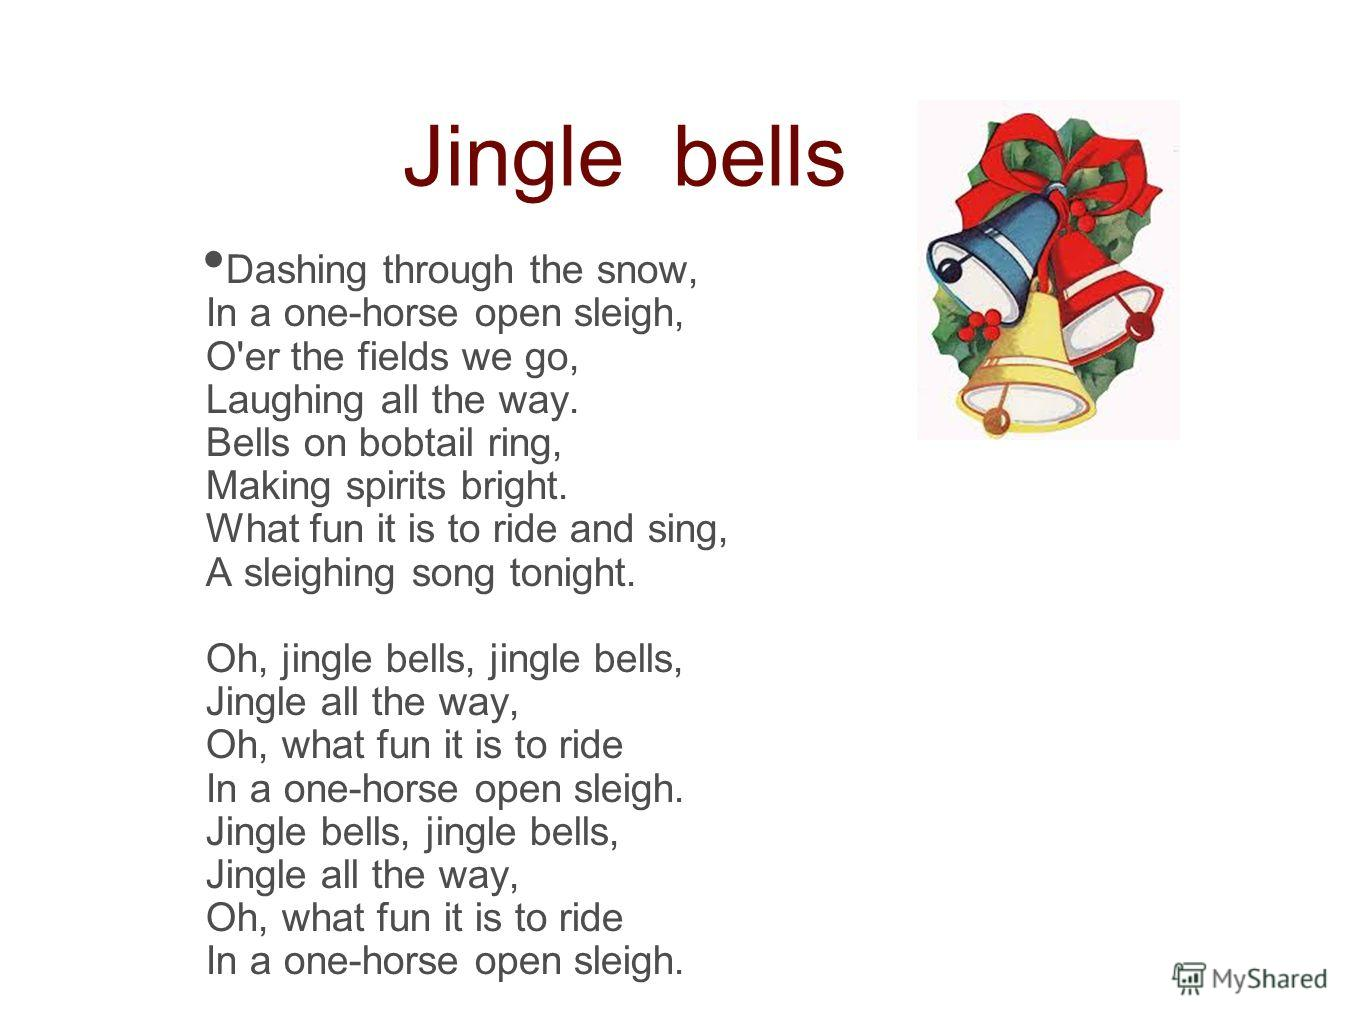 Jingle bells Dashing through the snow, In a one-horse open sleigh, O'er the fields we go, Laughing all the way. Bells on bobtail ring, Making spirits bright. What fun it is to ride and sing, A sleighing song tonight. Oh, jingle bells, jingle bells, J